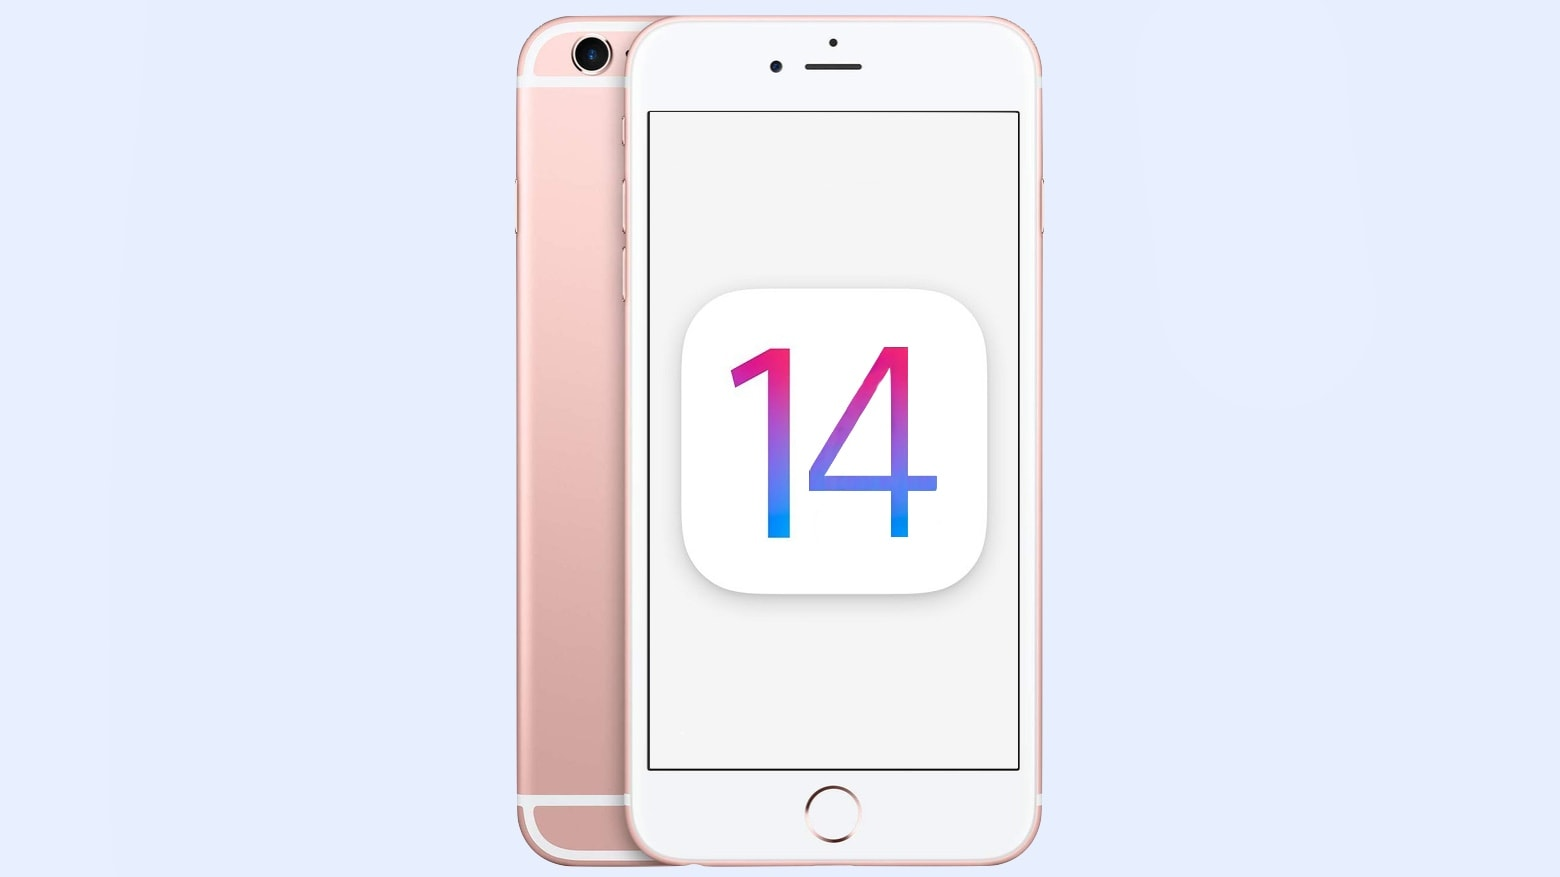 iOS 14 will reportedly run on many older iPhone models